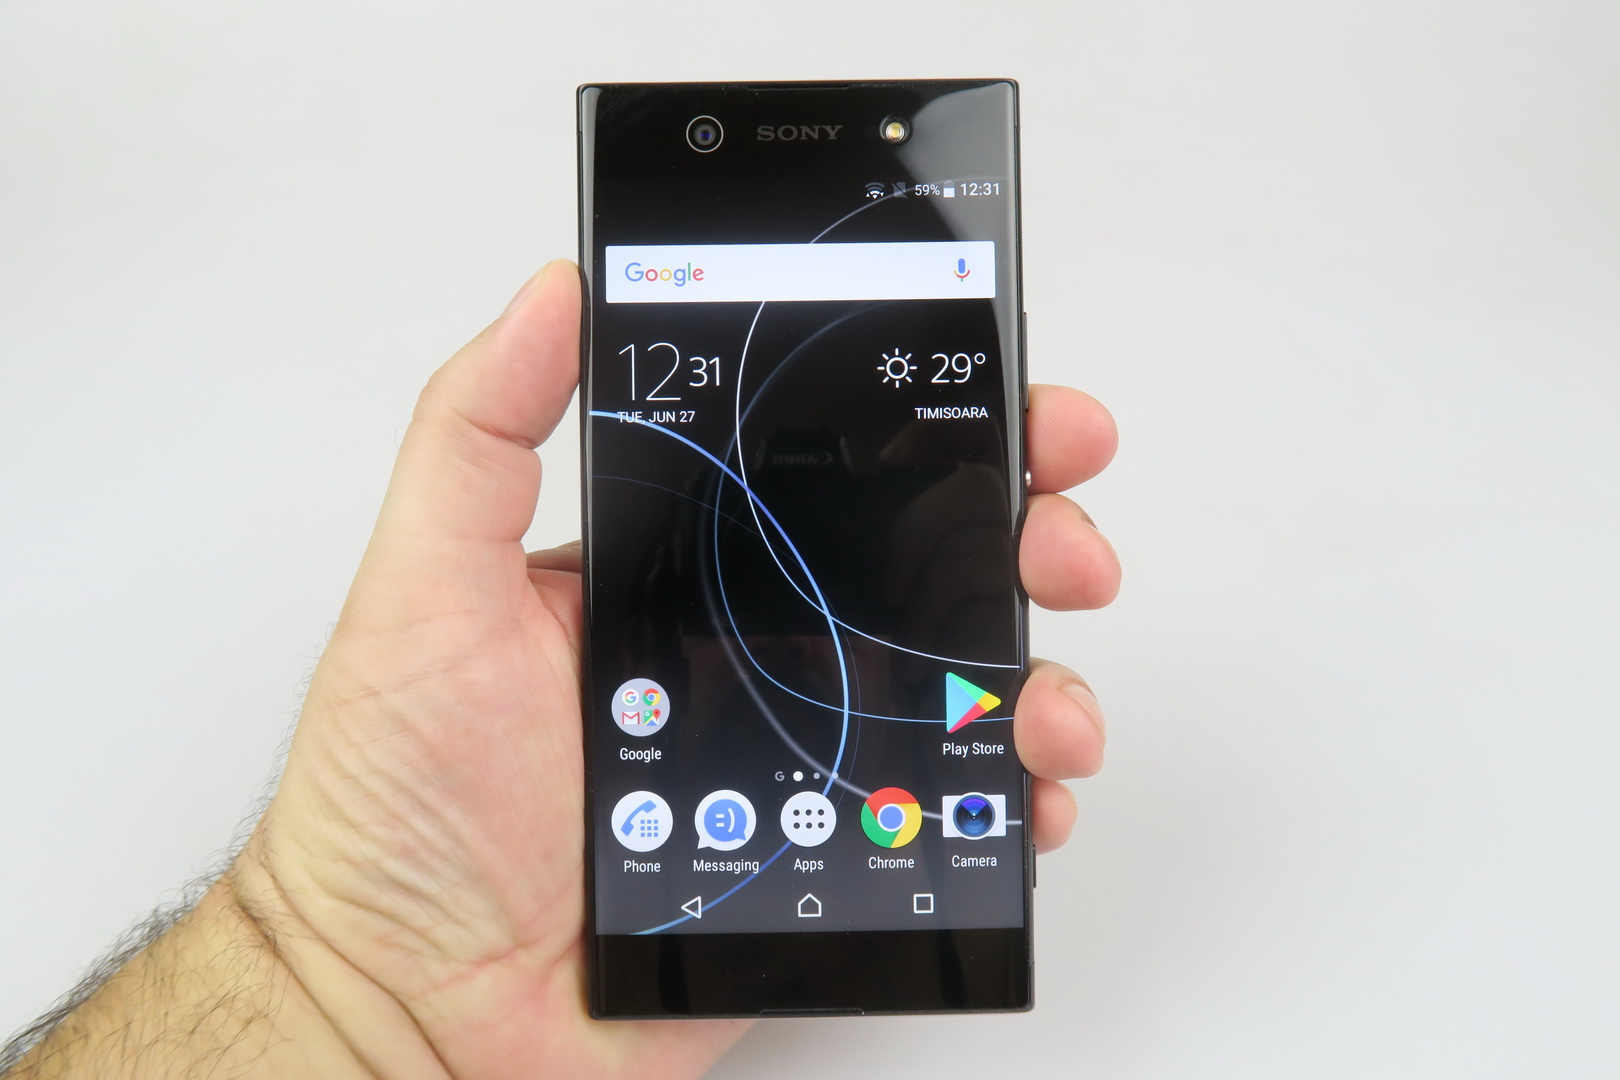 sony xperia xa1 ultra 065 tablet news. Black Bedroom Furniture Sets. Home Design Ideas